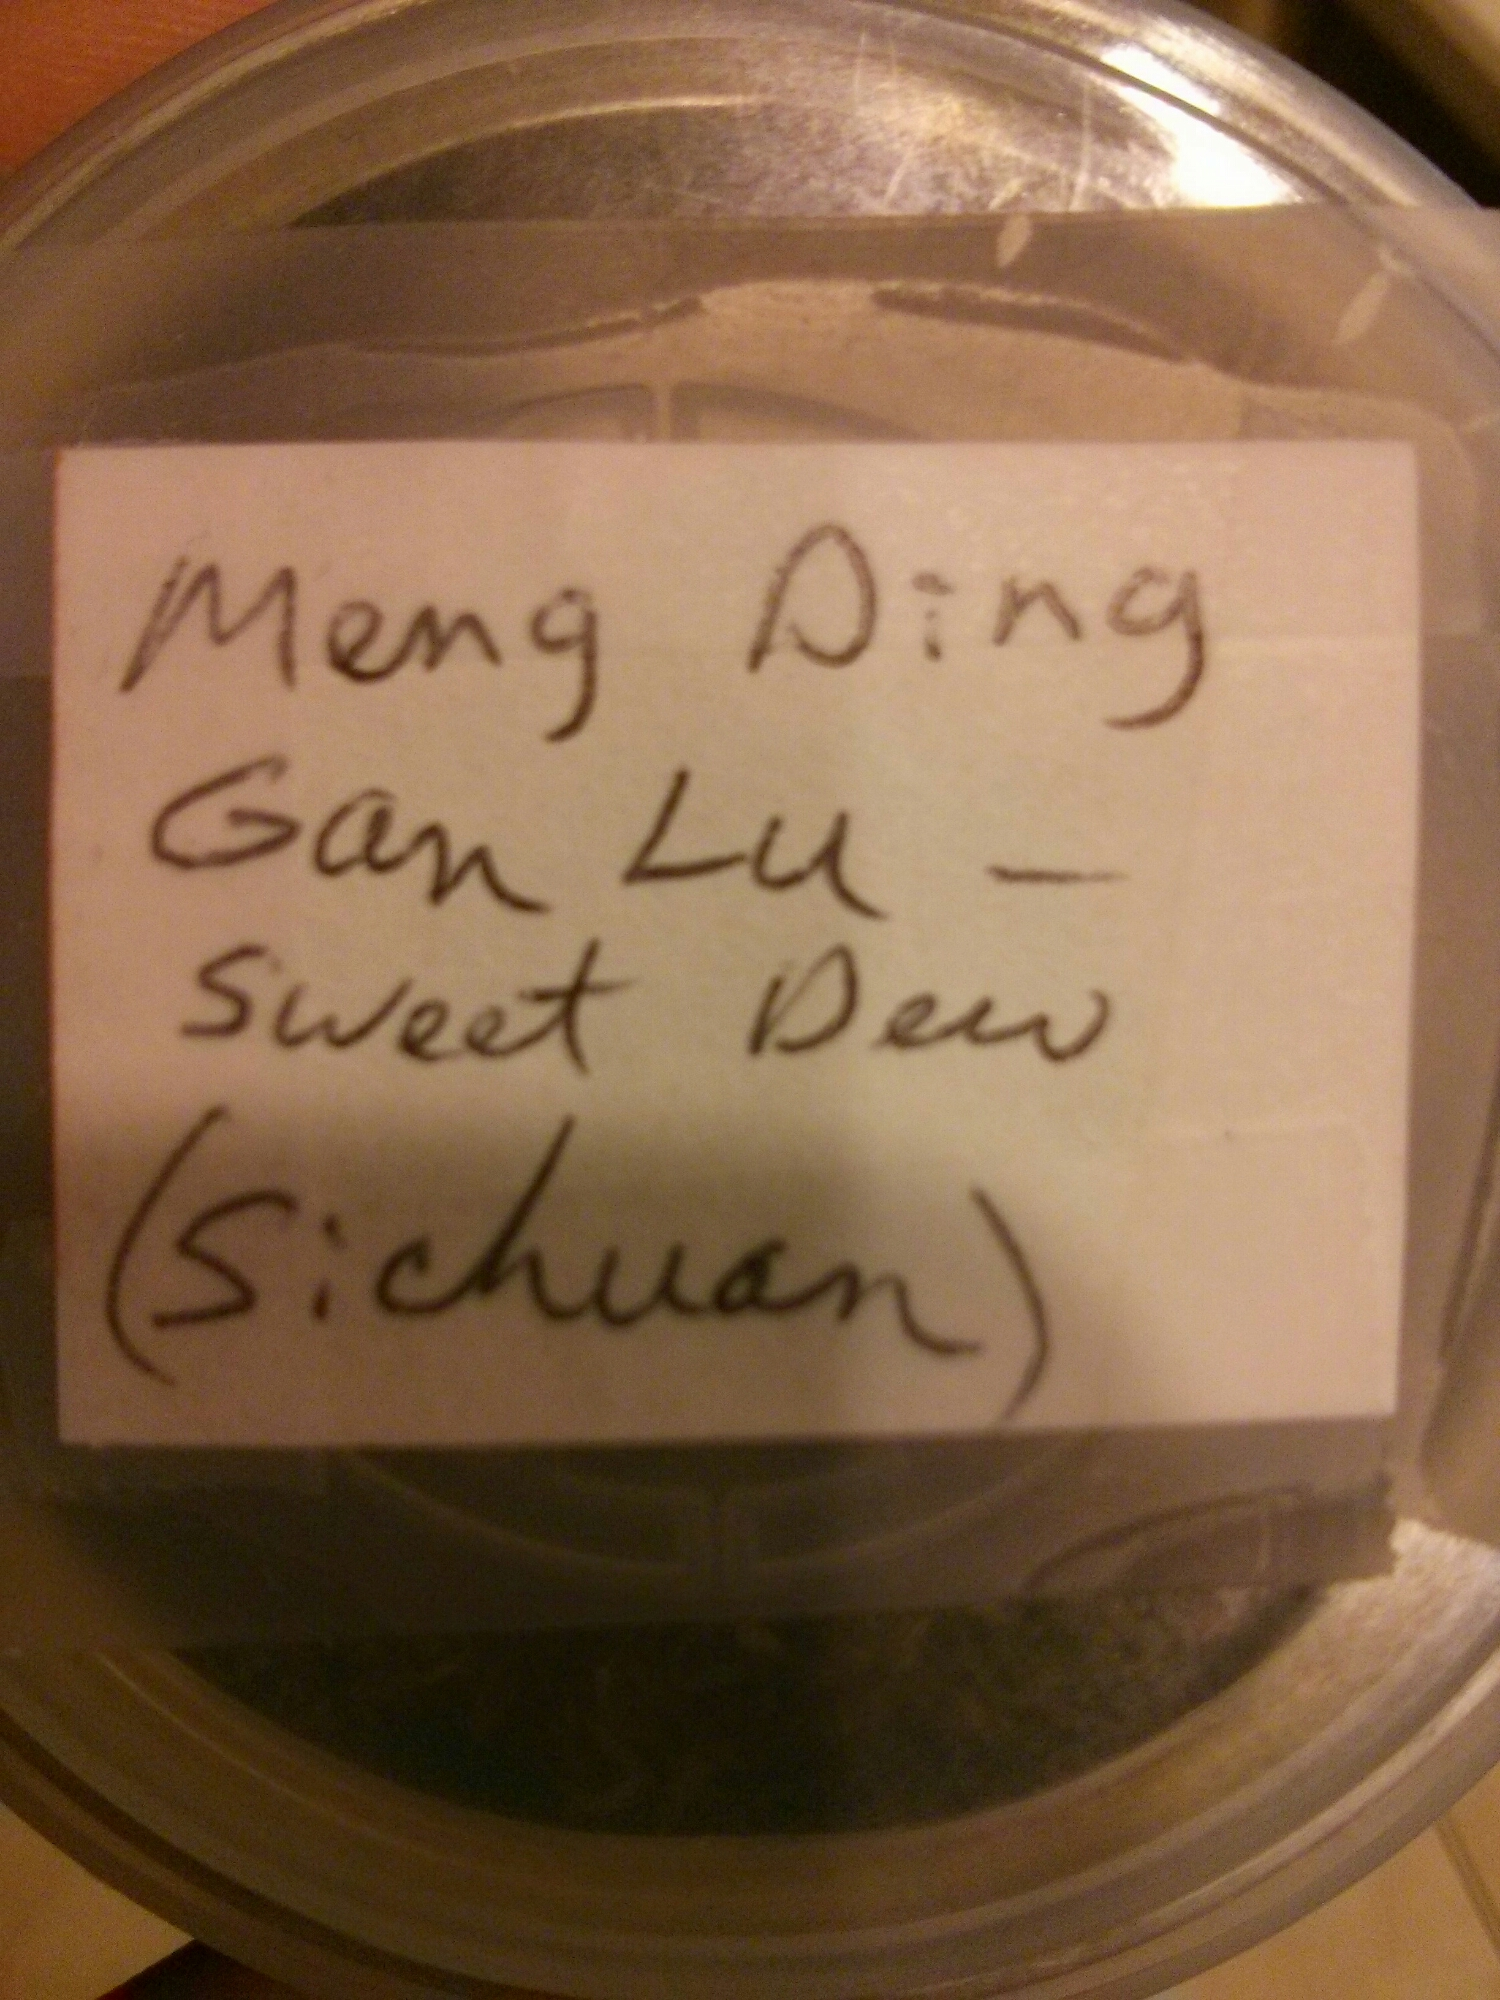 "Meng Ding Gan Lu or ""Sweet Dew"" is a very famous green tea from Sichuan Province."